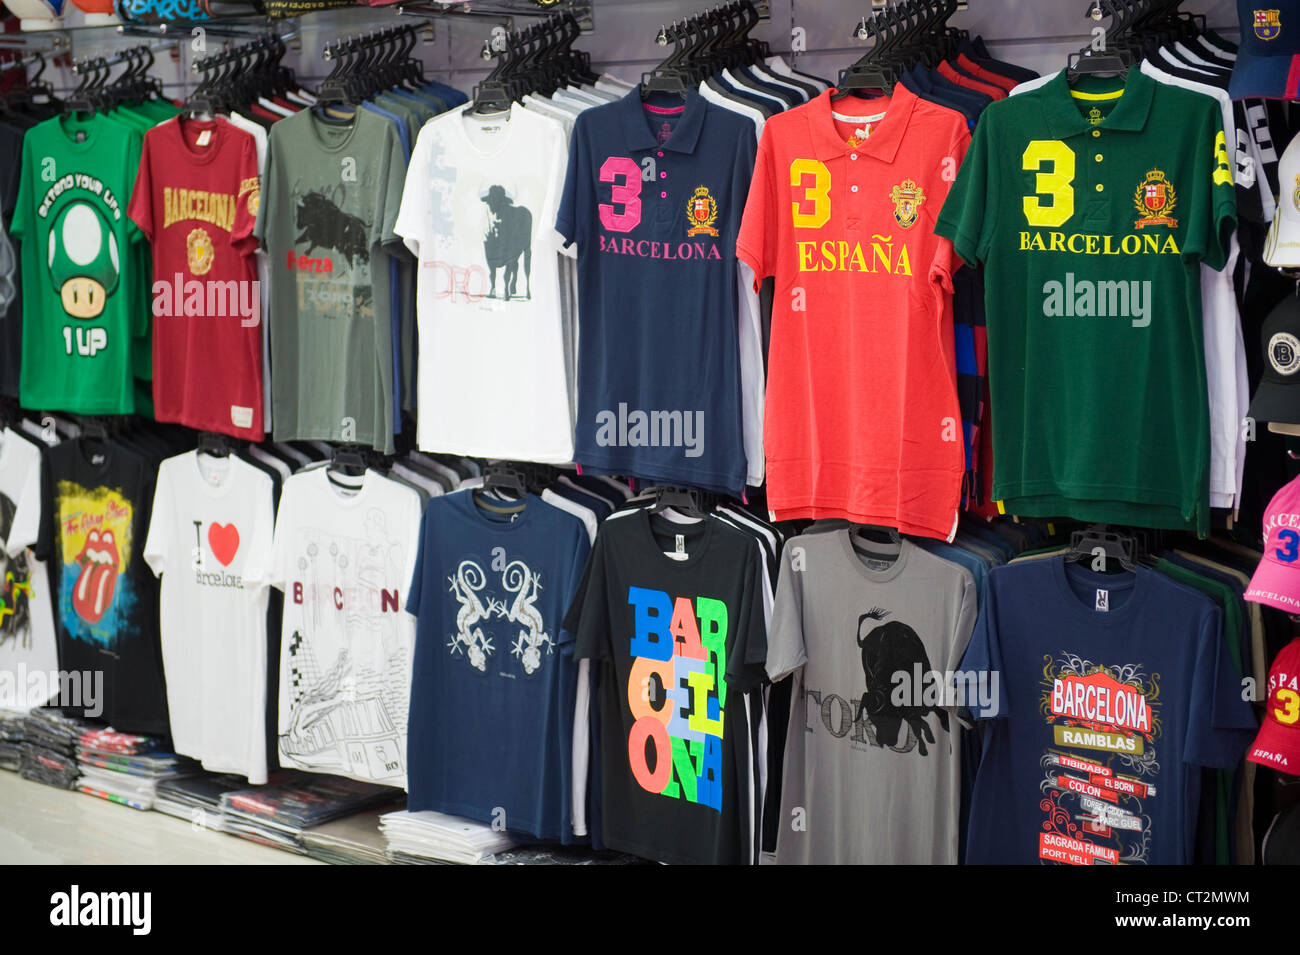 t shirts hanging in a souvenir shop in barcelona Stock Photo ... a9f7b3f41caa